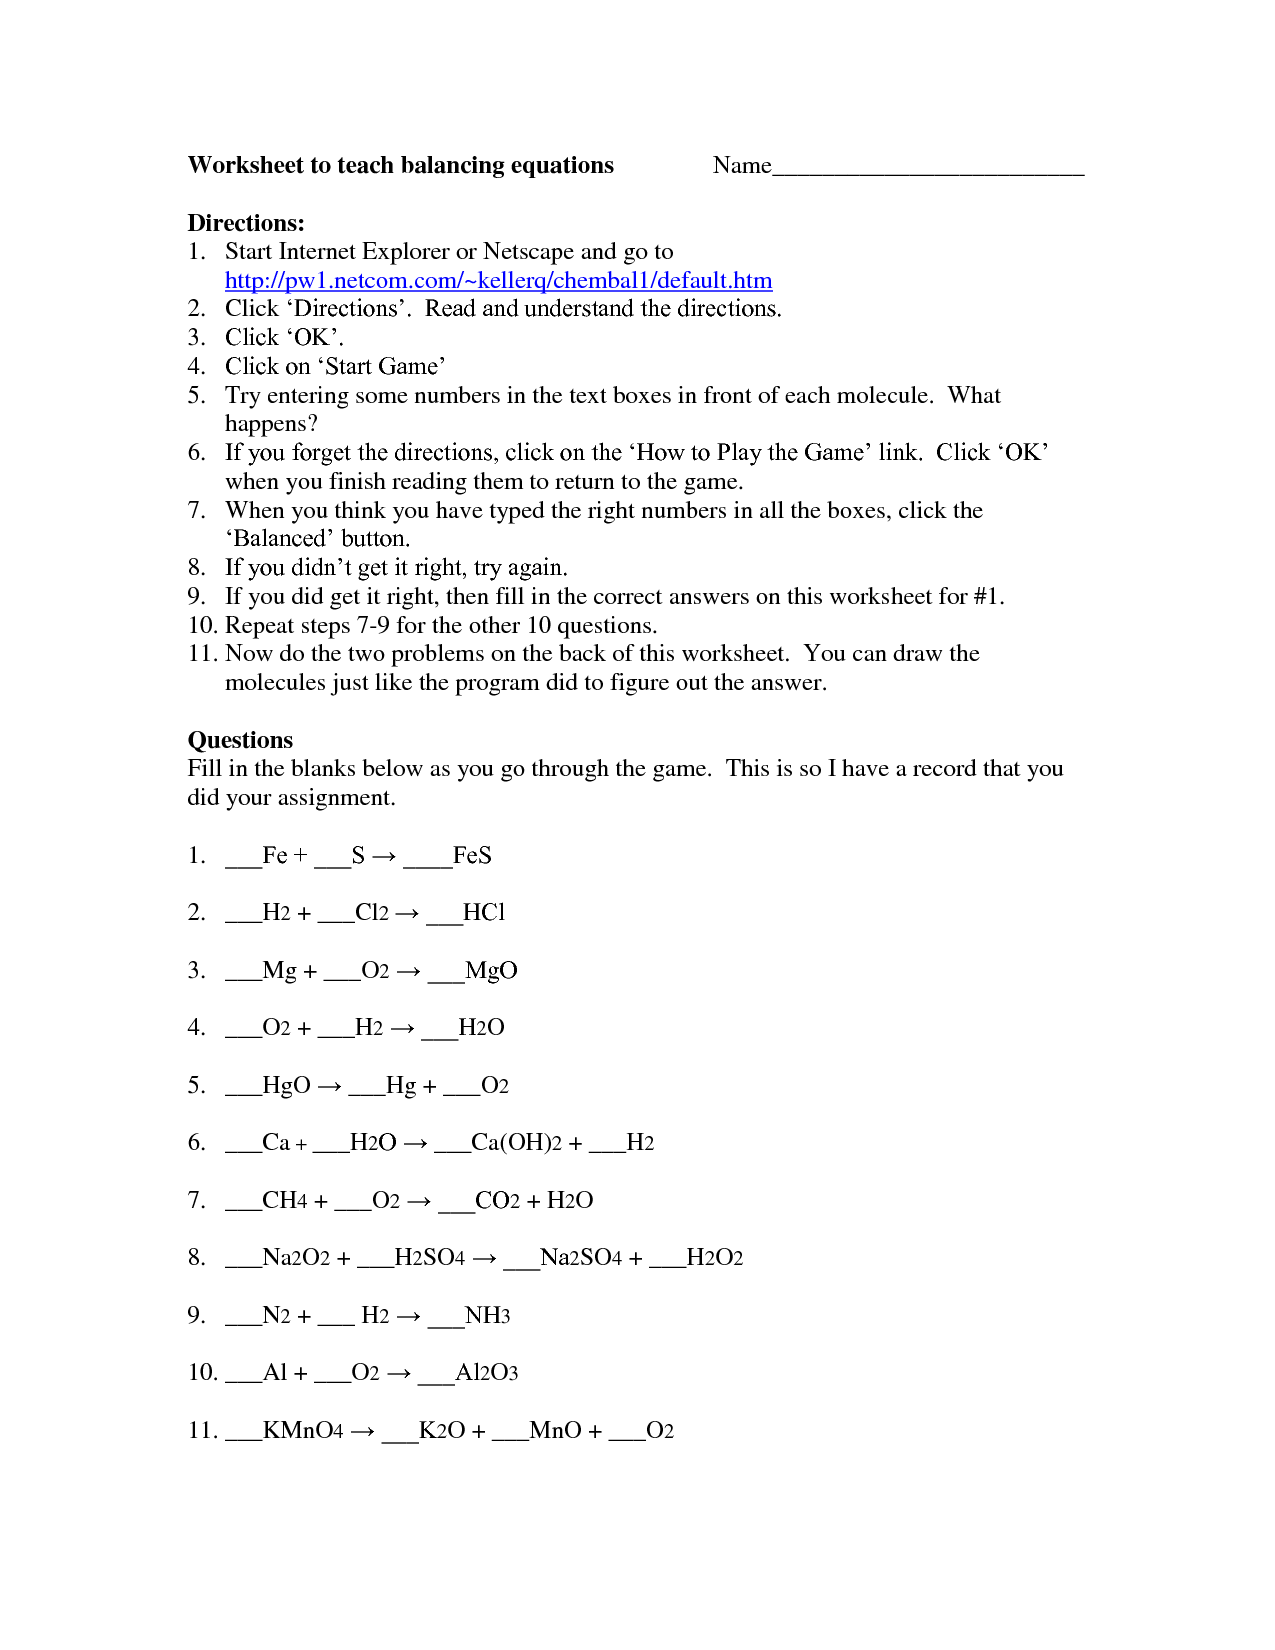 Worksheet On Balancing Equations